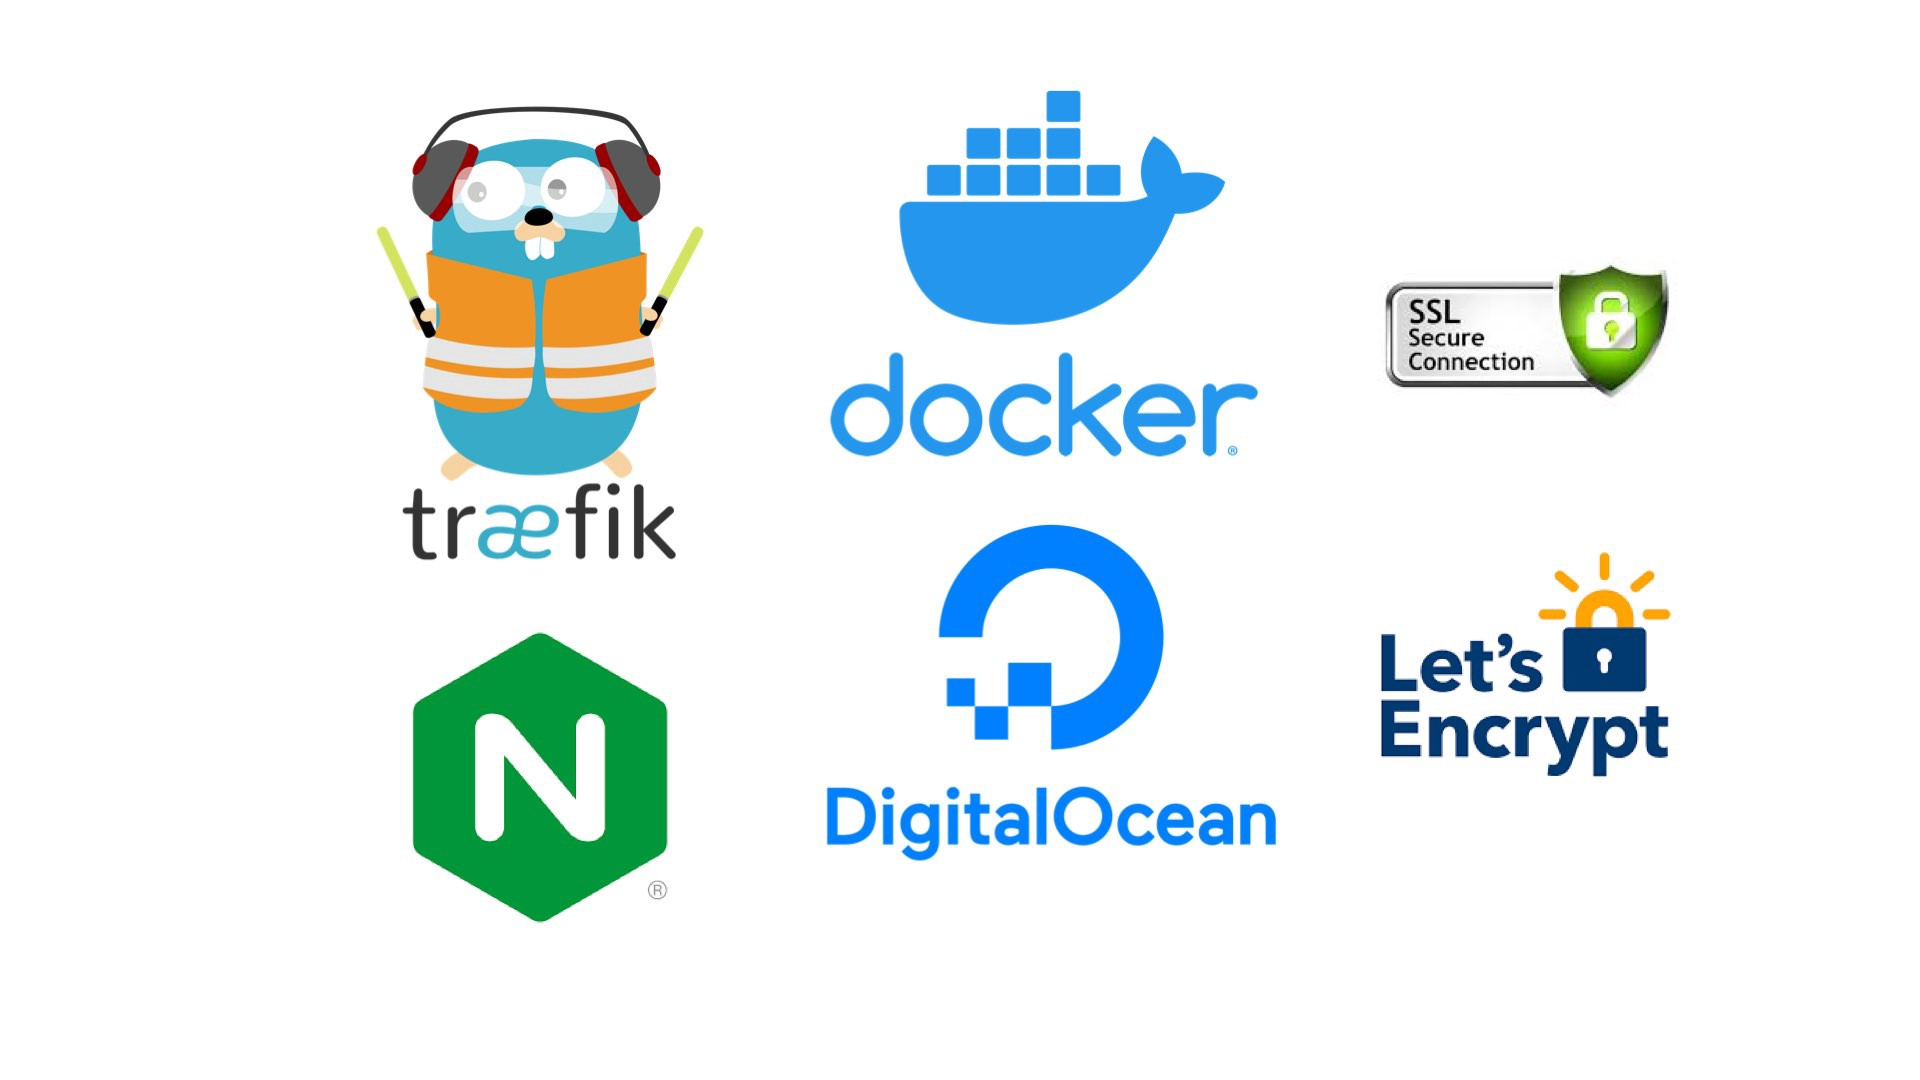 Logos of technology described in the blog post